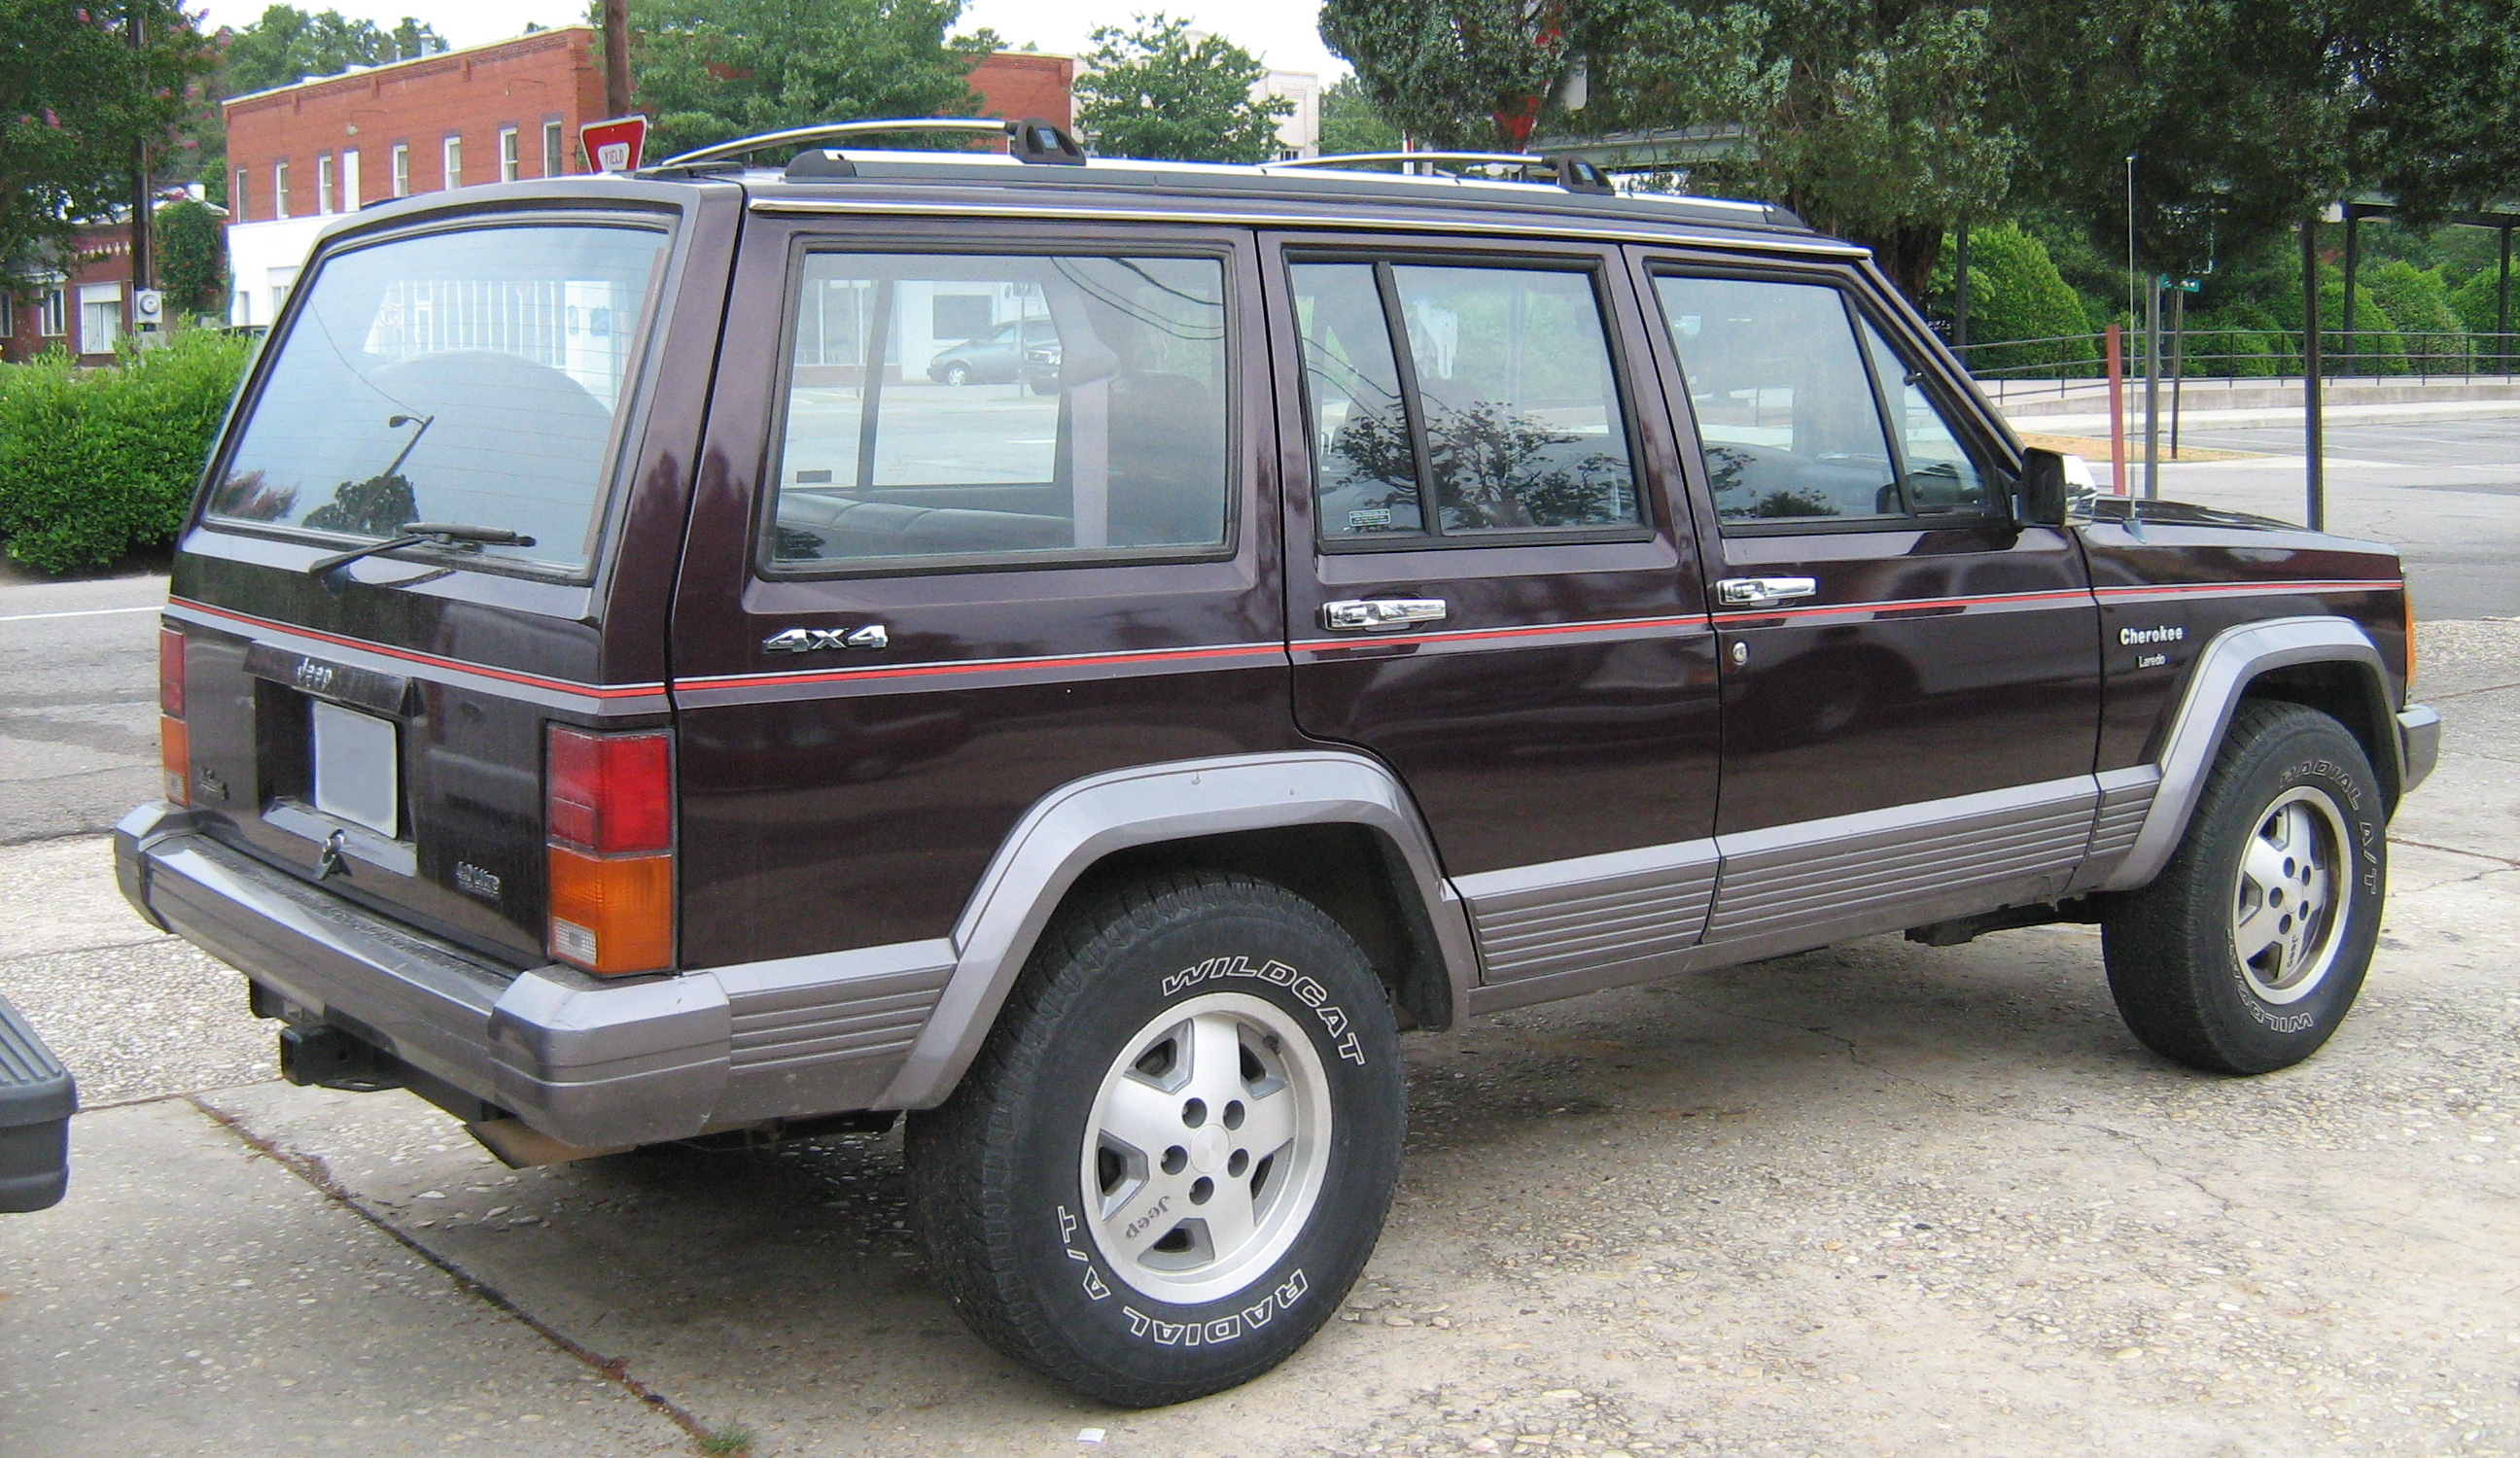 File Jeep Cherokee XJ 4D Laredo burgundy SOP rr on 1995 jeep cherokee interior